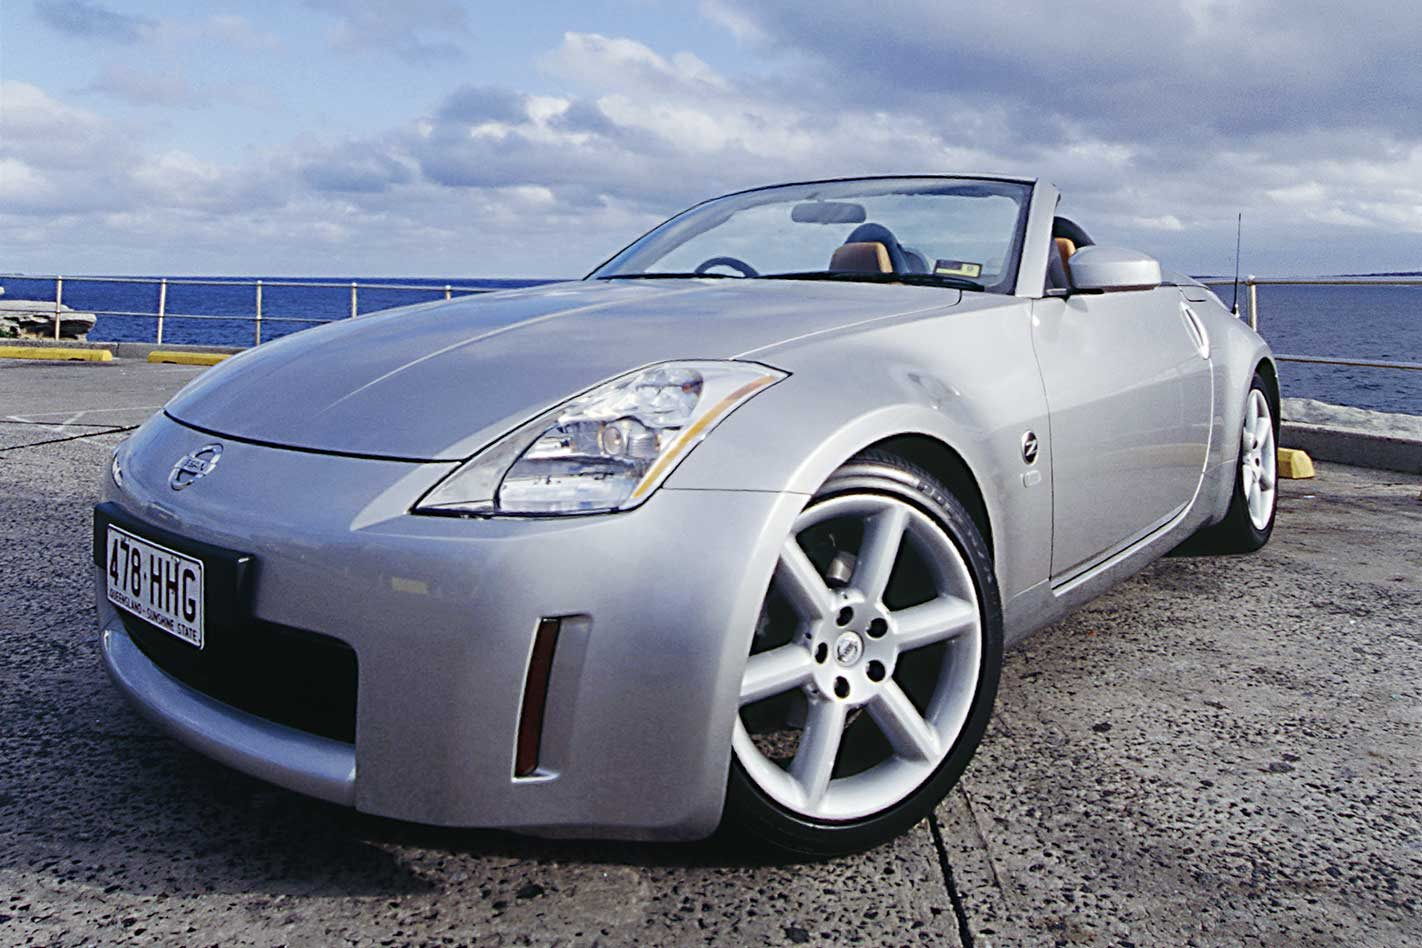 2004 nissan 350z roadster review: classic motor